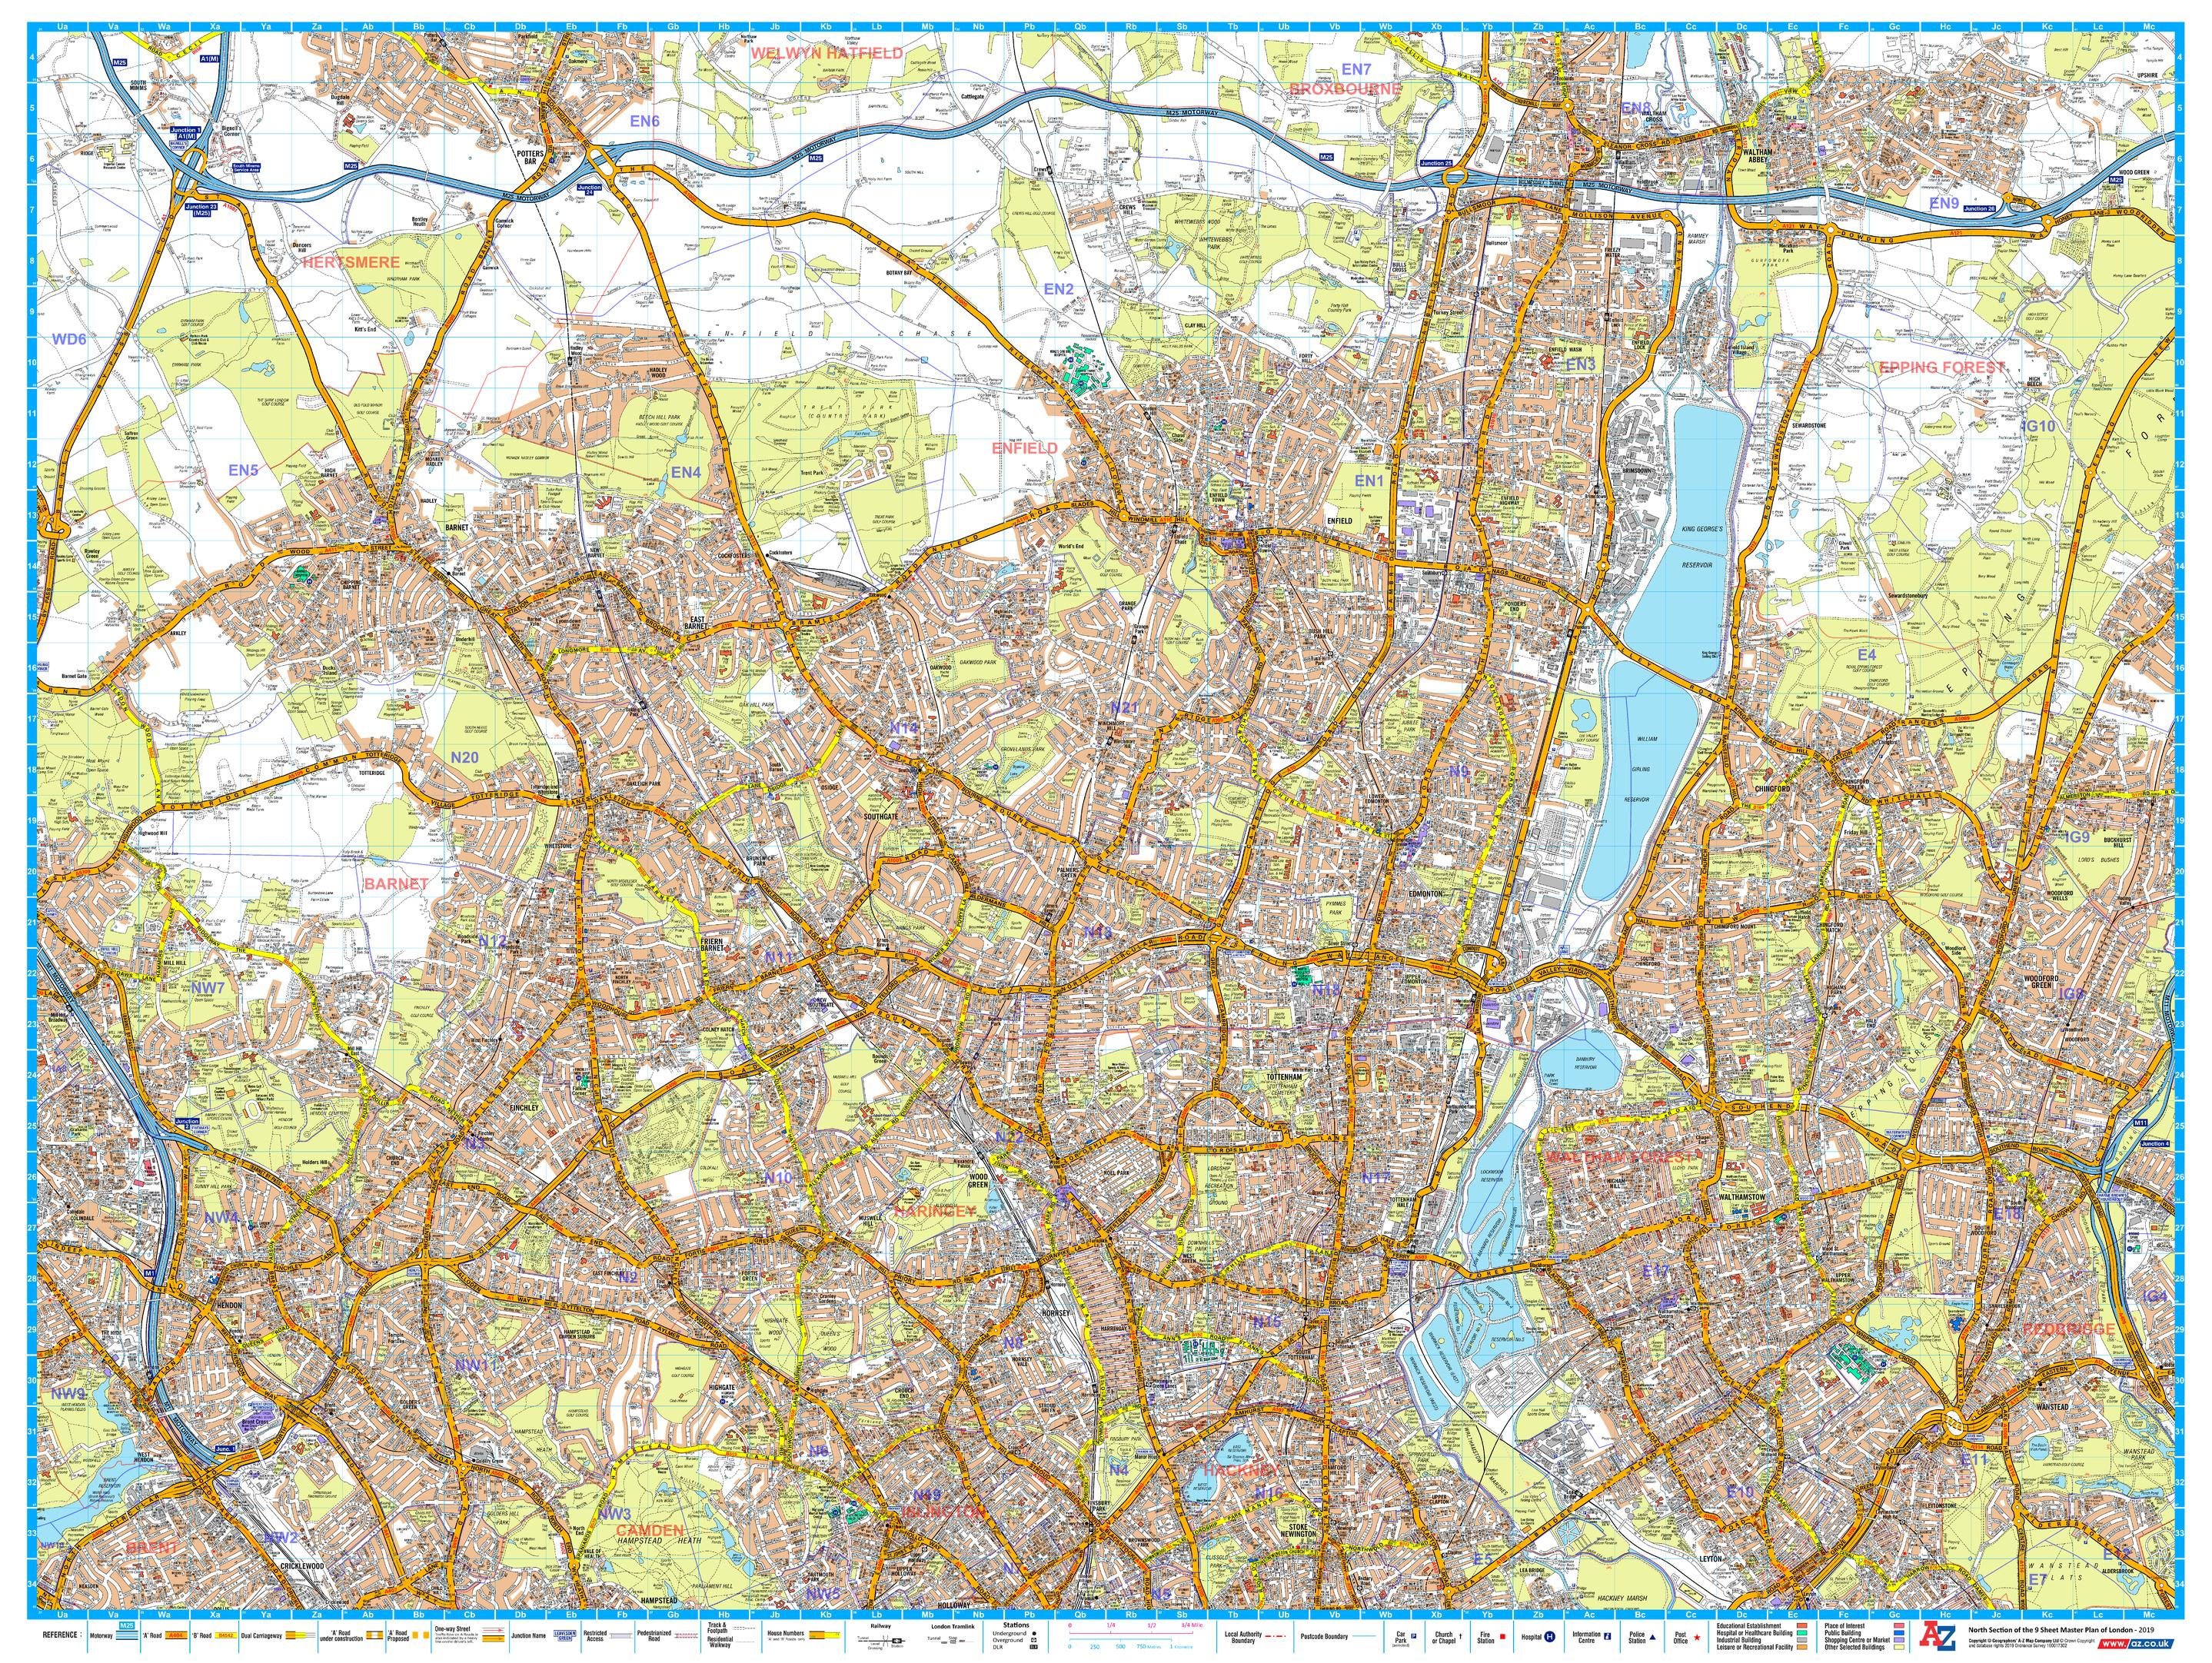 Az Street Map Of London.A Z London Master Plan North